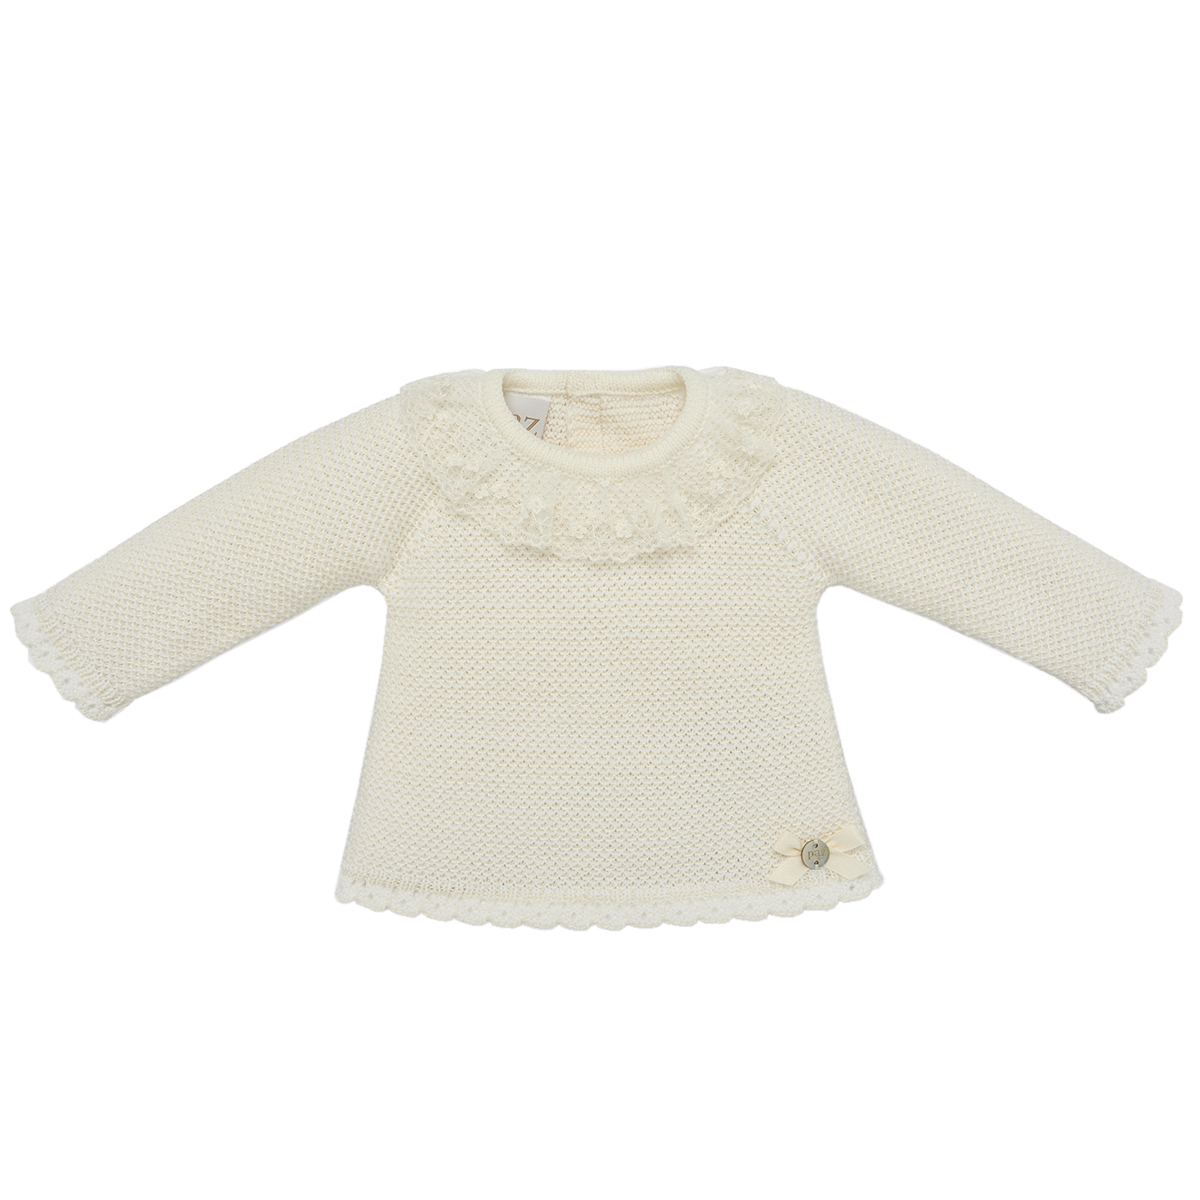 Paz Rodriguez Paz Knit Sweater in Crudo